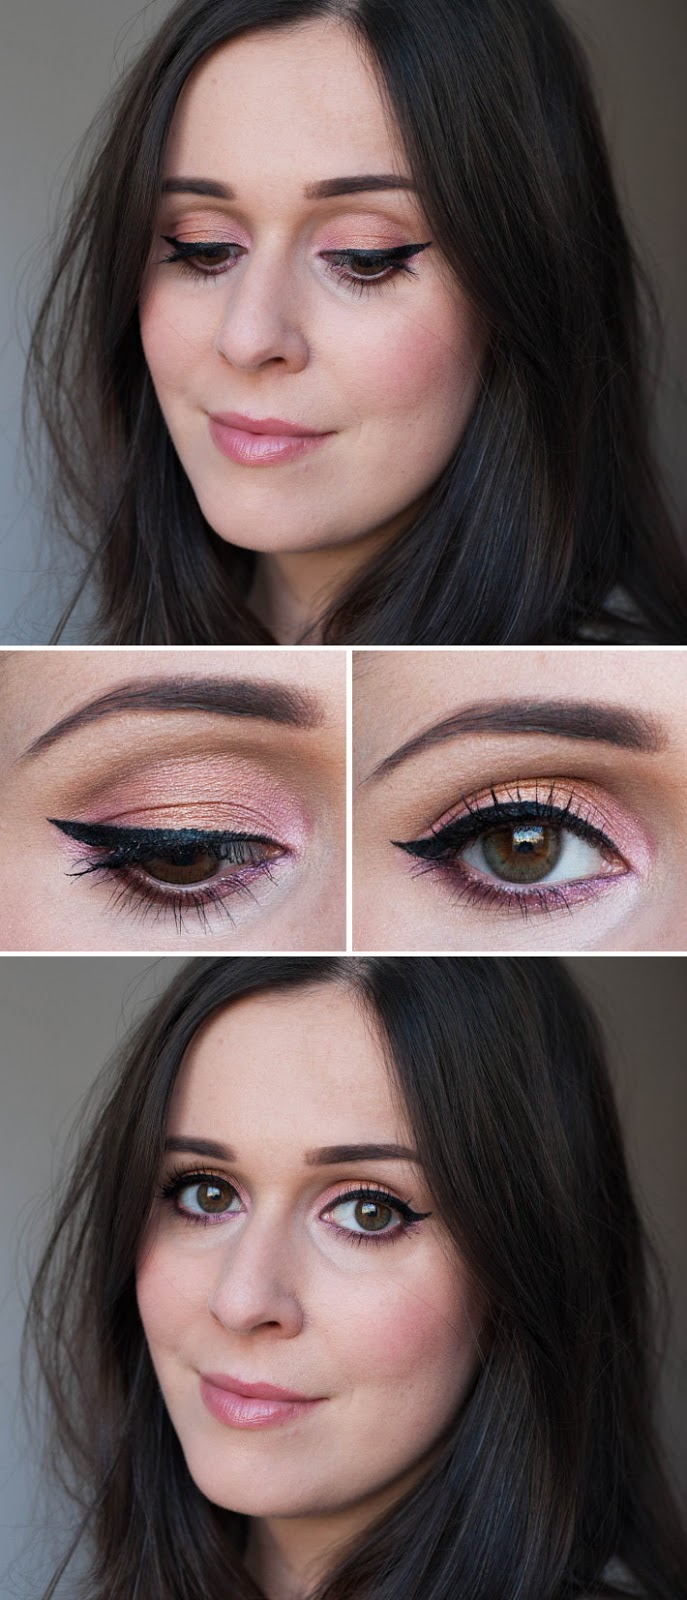 pink cat eye using Urban Decay x Gwen Stefani palette